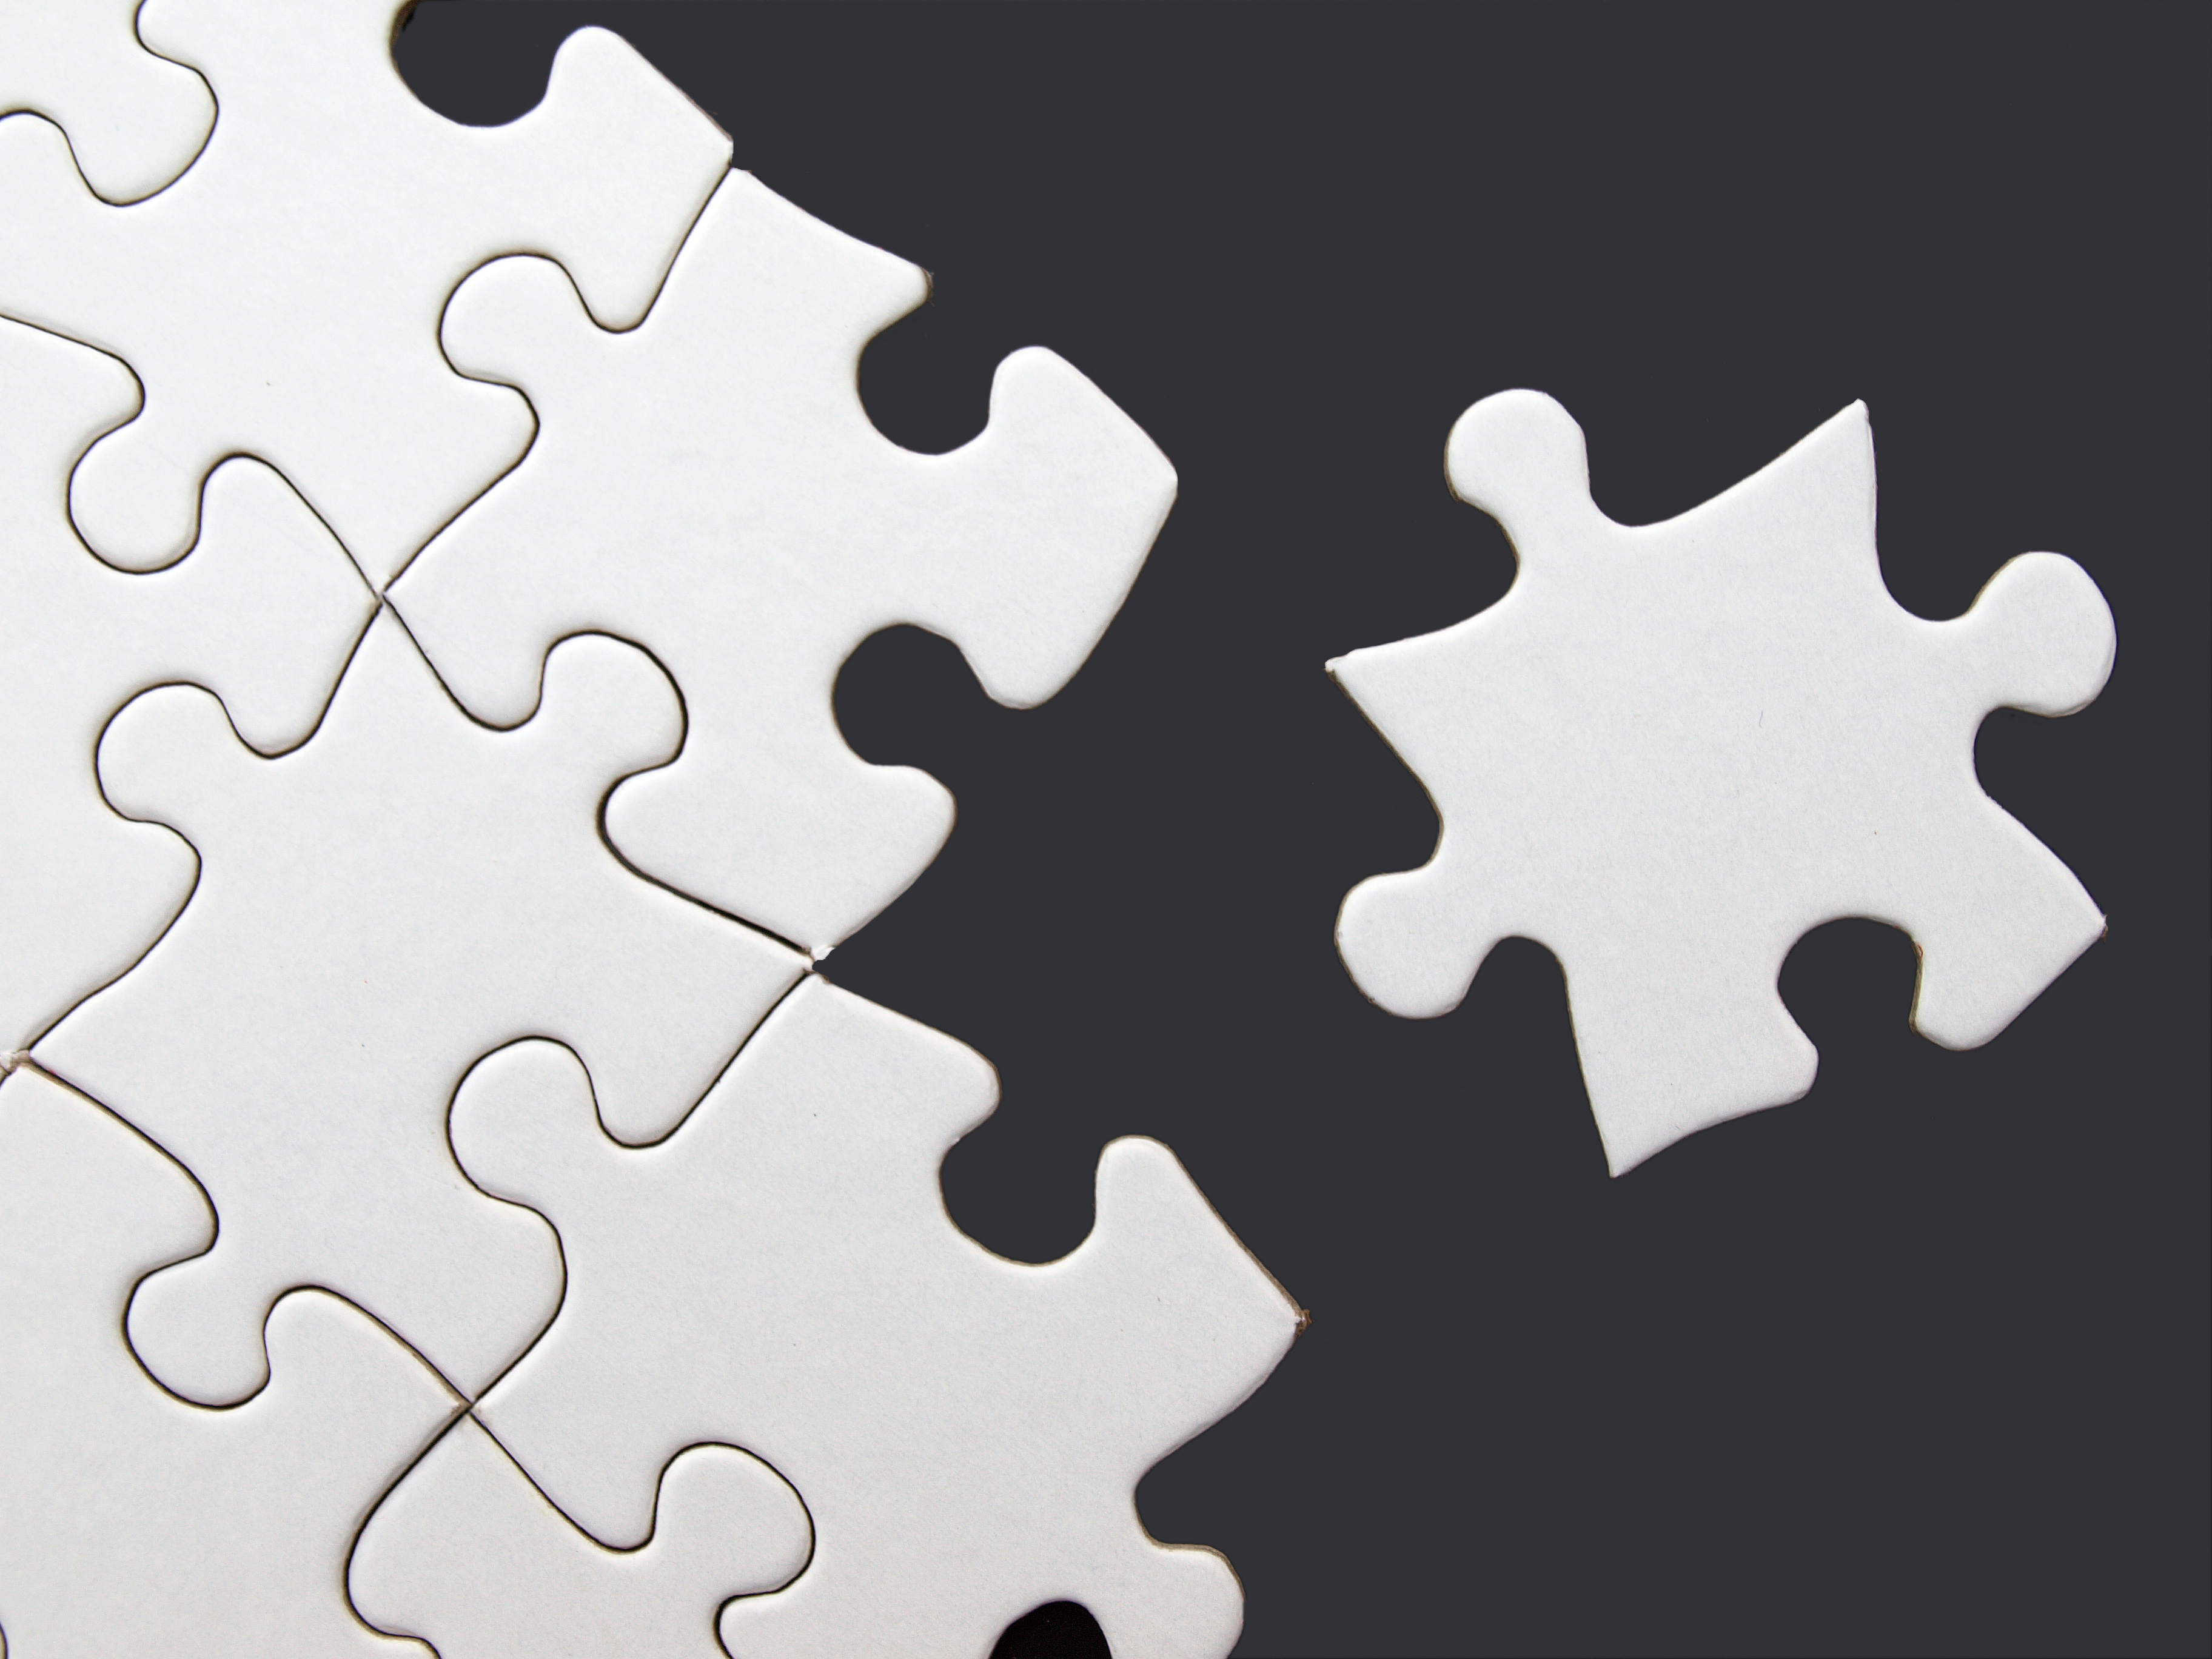 Image result for jigsaw pieces linked